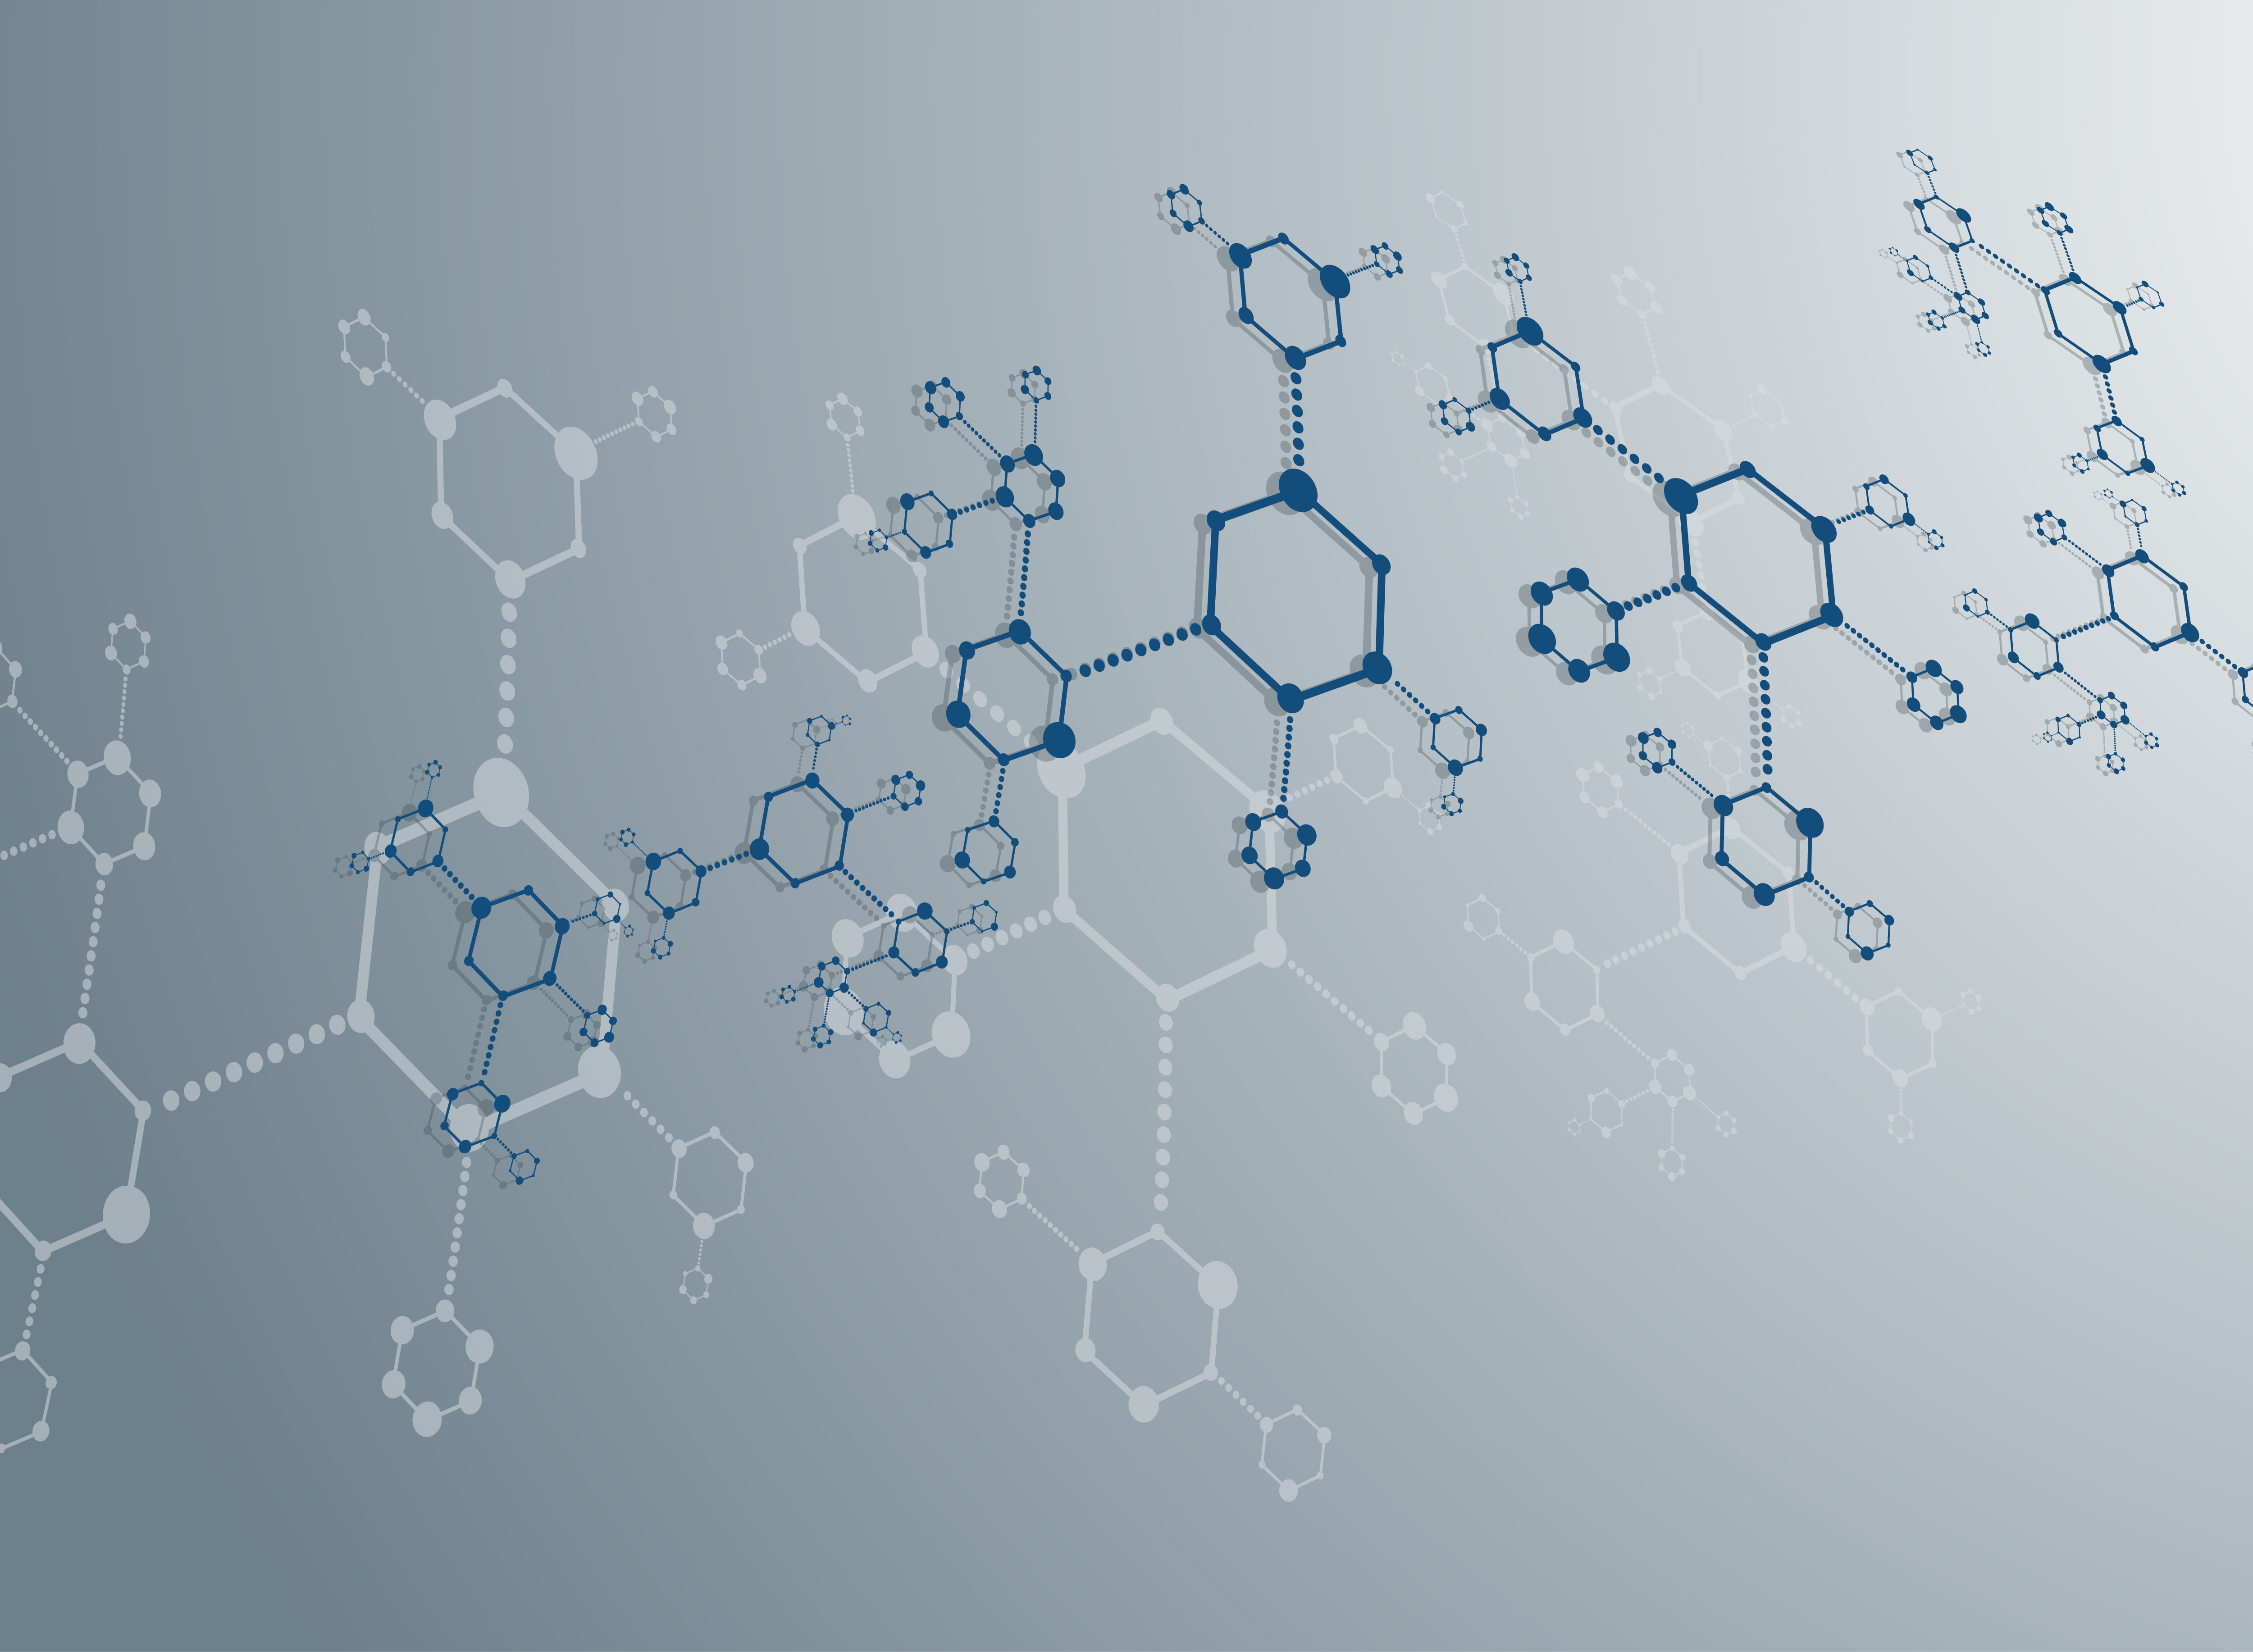 turning to chemistry for new computing concepts